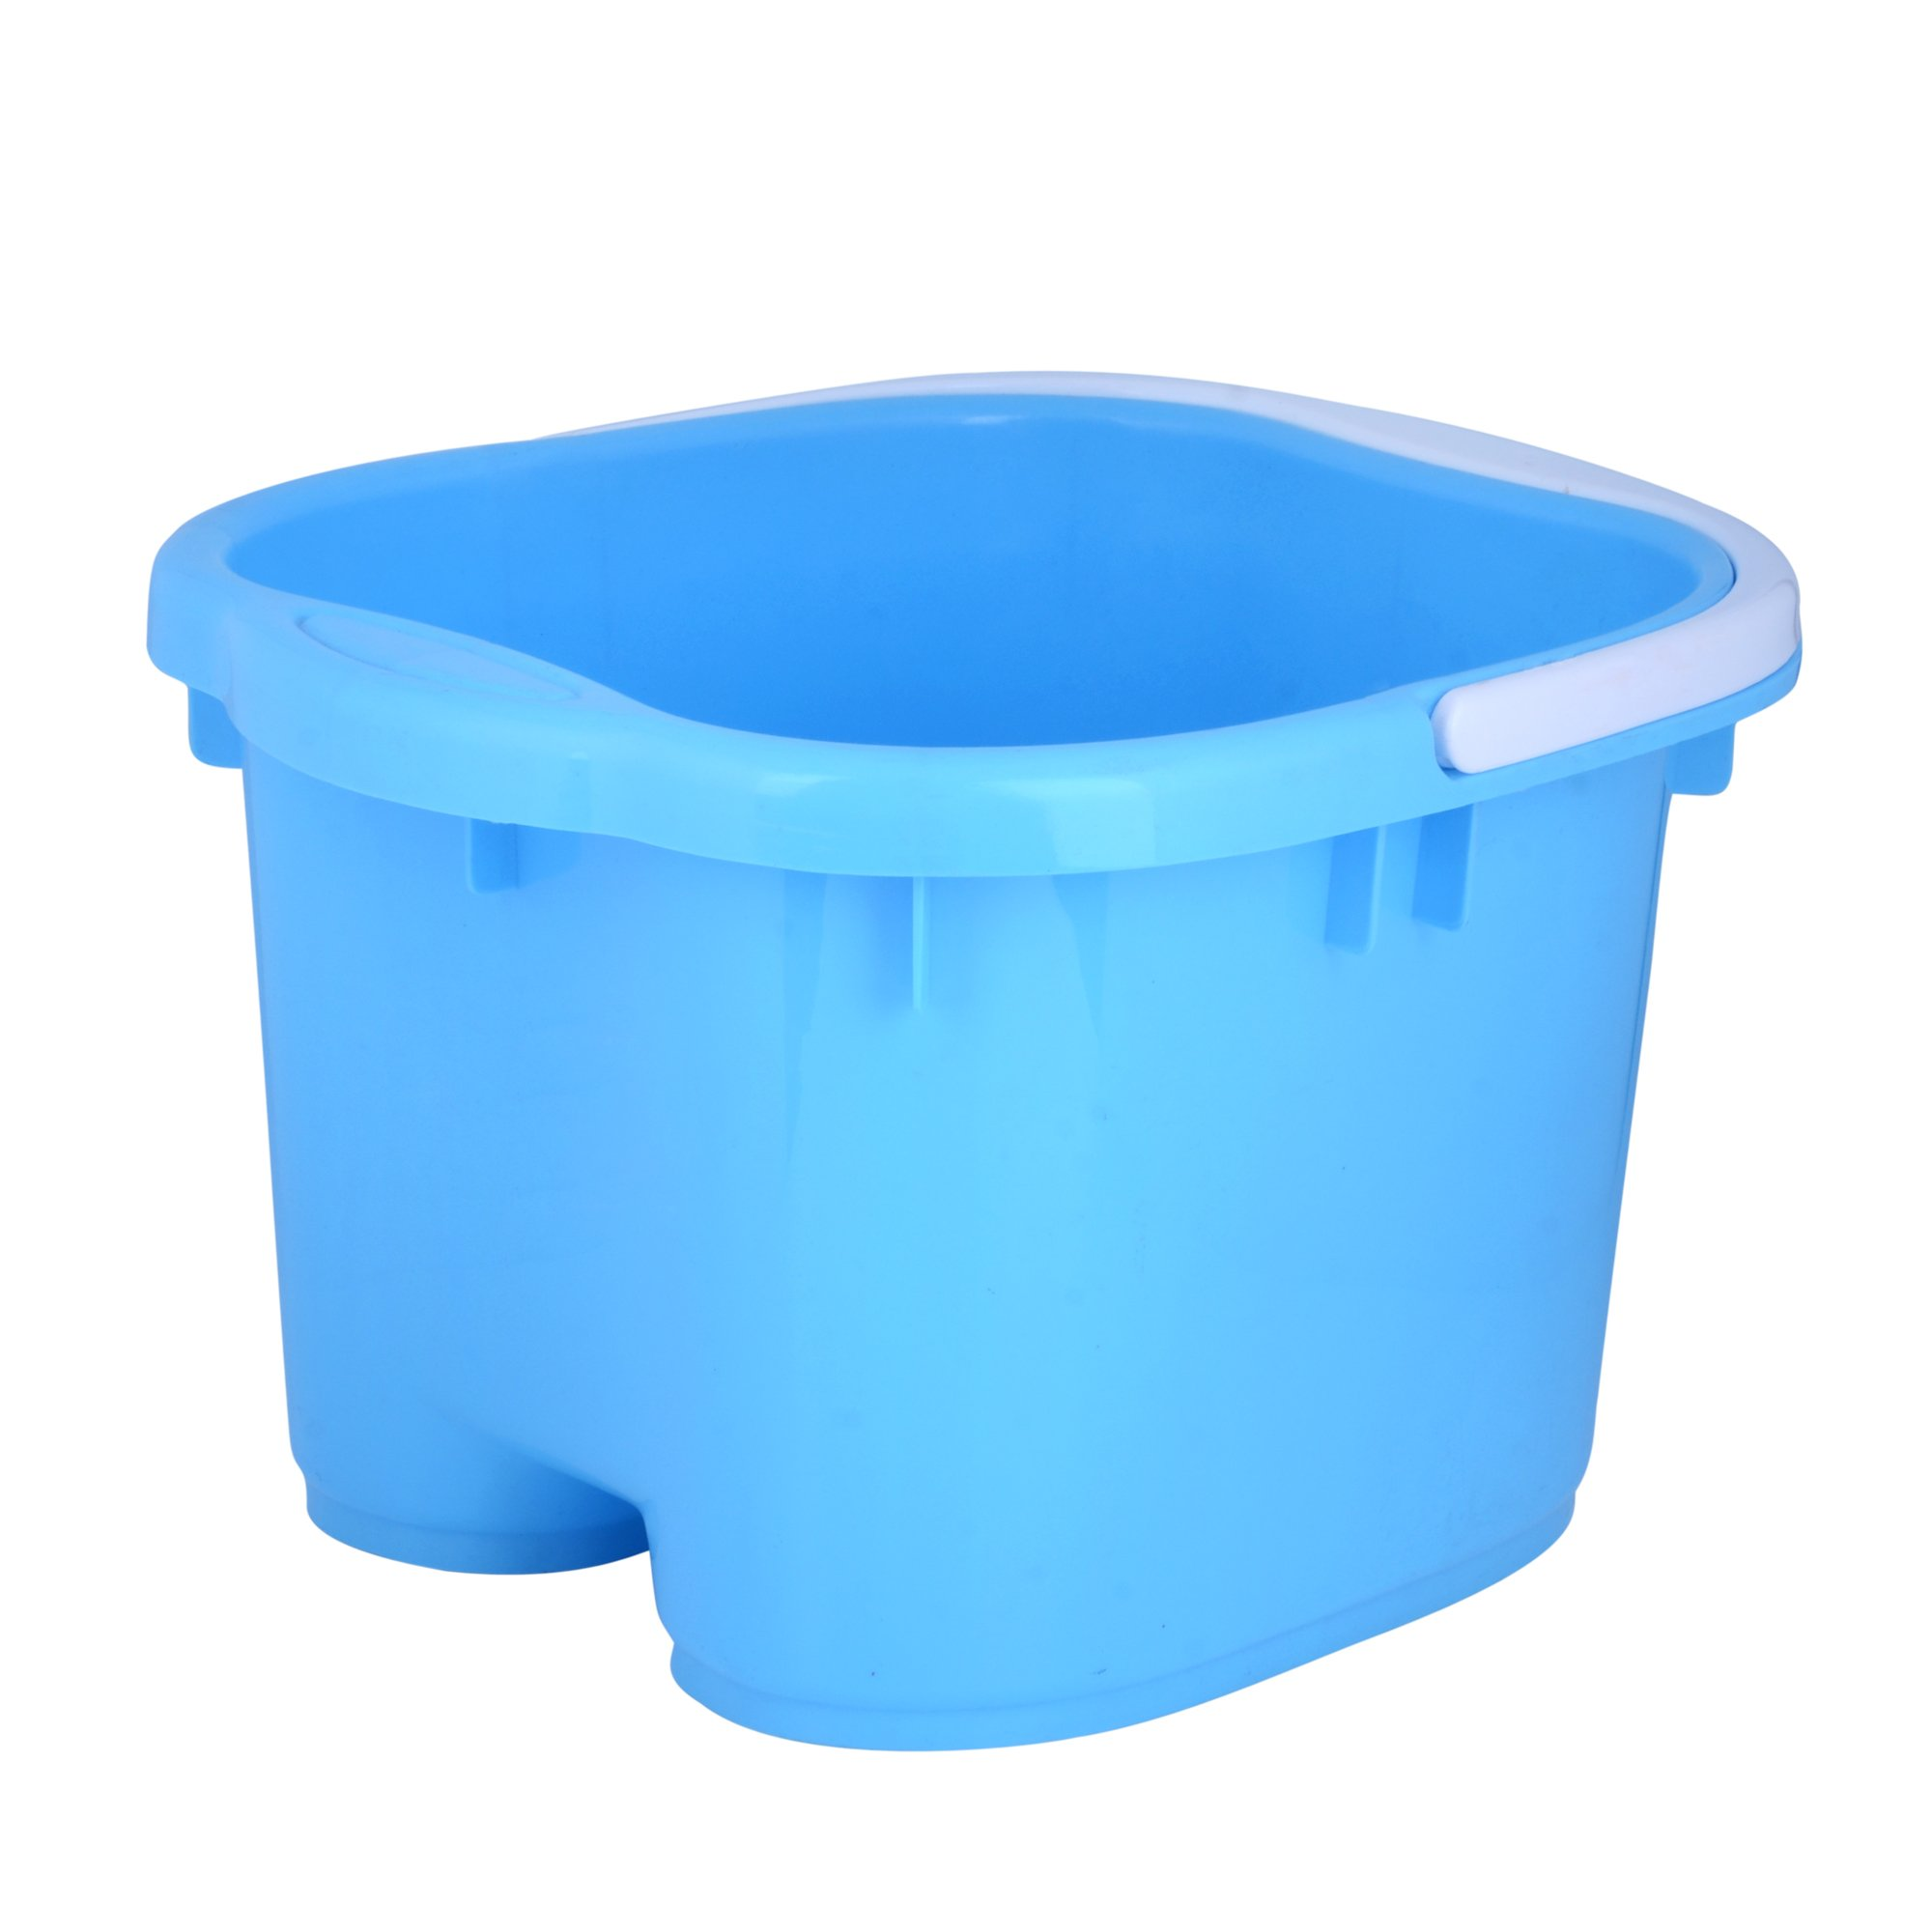 Foot Spa Bucket with Handle and Removable Rollers for Massage (Blue)